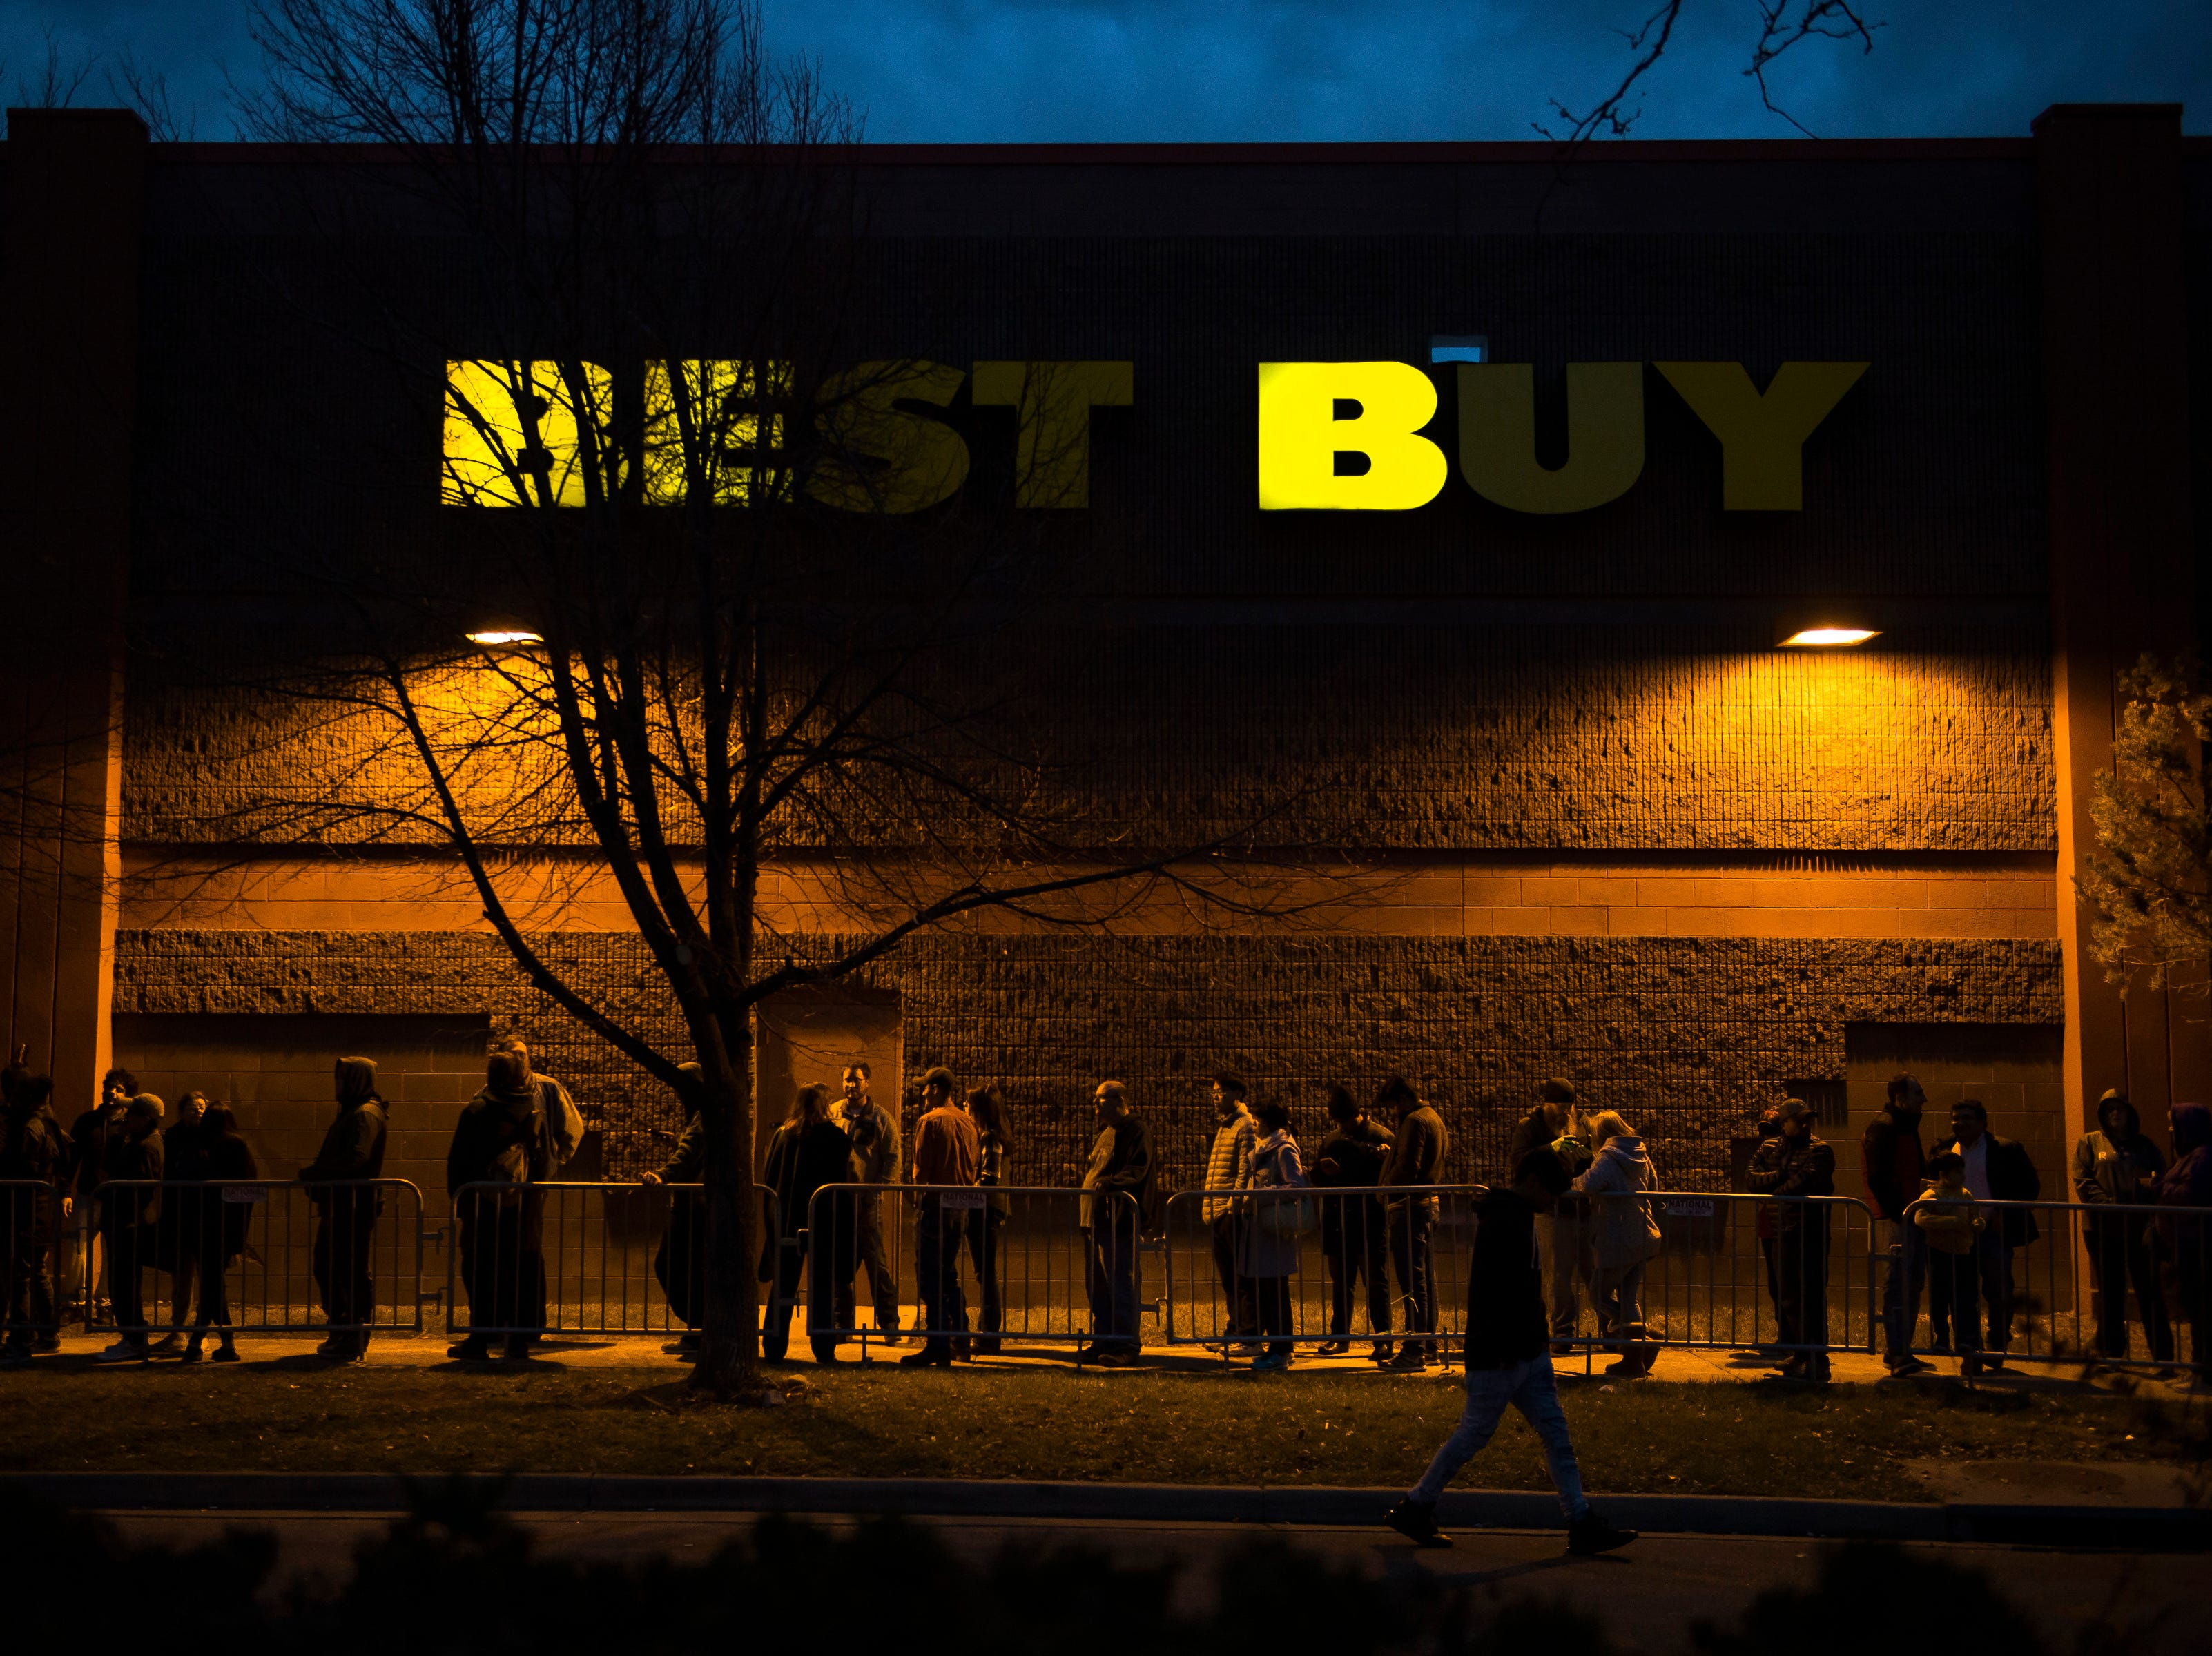 Customers line up outside waiting for the doors to open on Thursday, Nov. 22, 2018, at Best Buy in Fort Collins, Colo.